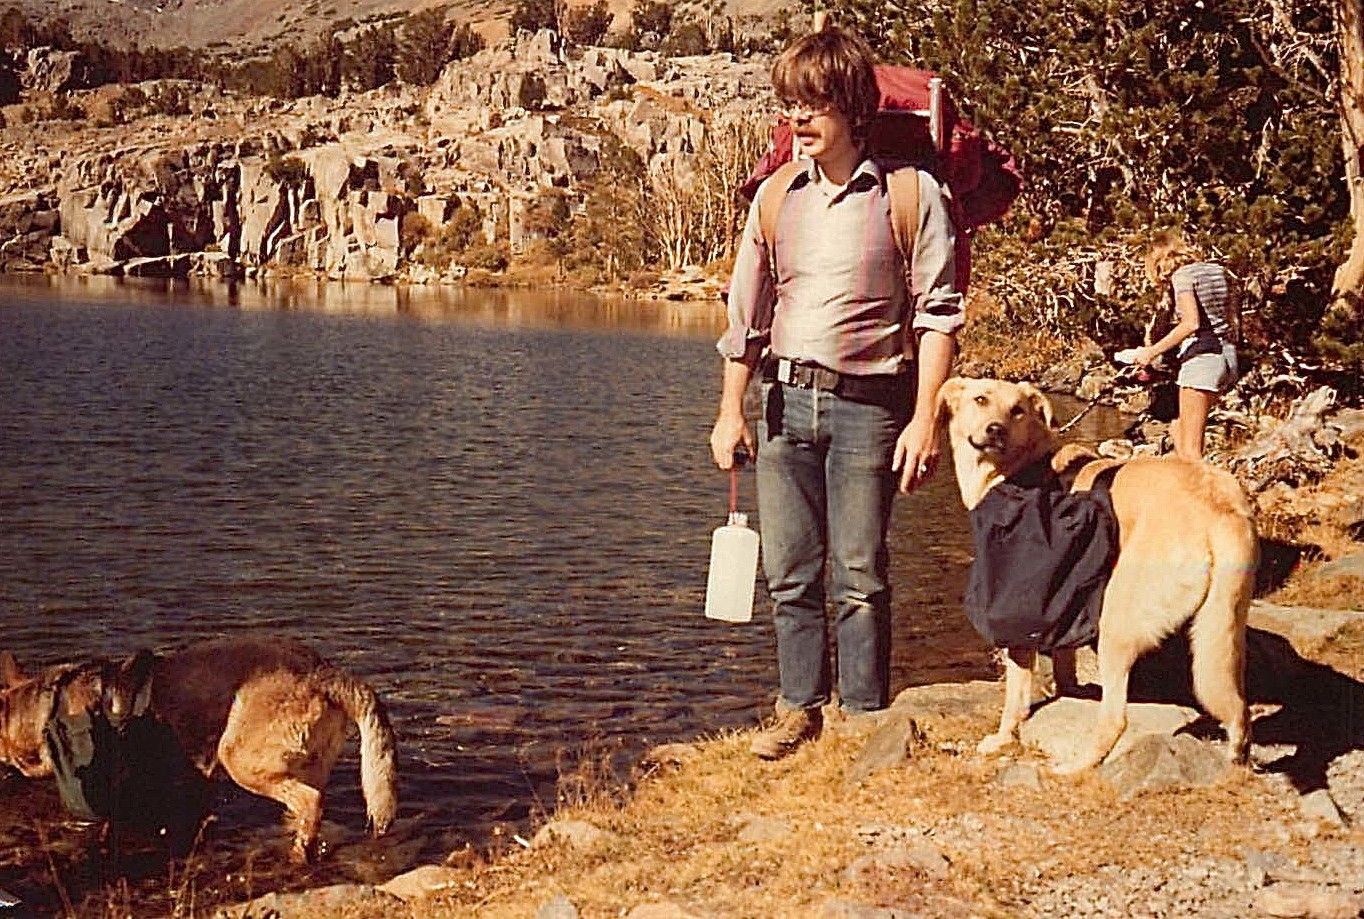 Steve Carlson, with Nero & Habibi. On this backpacking trip: Connie, Reg, Alison, John & Lorraine Oct 1977 Hoover Lakes, Sierras